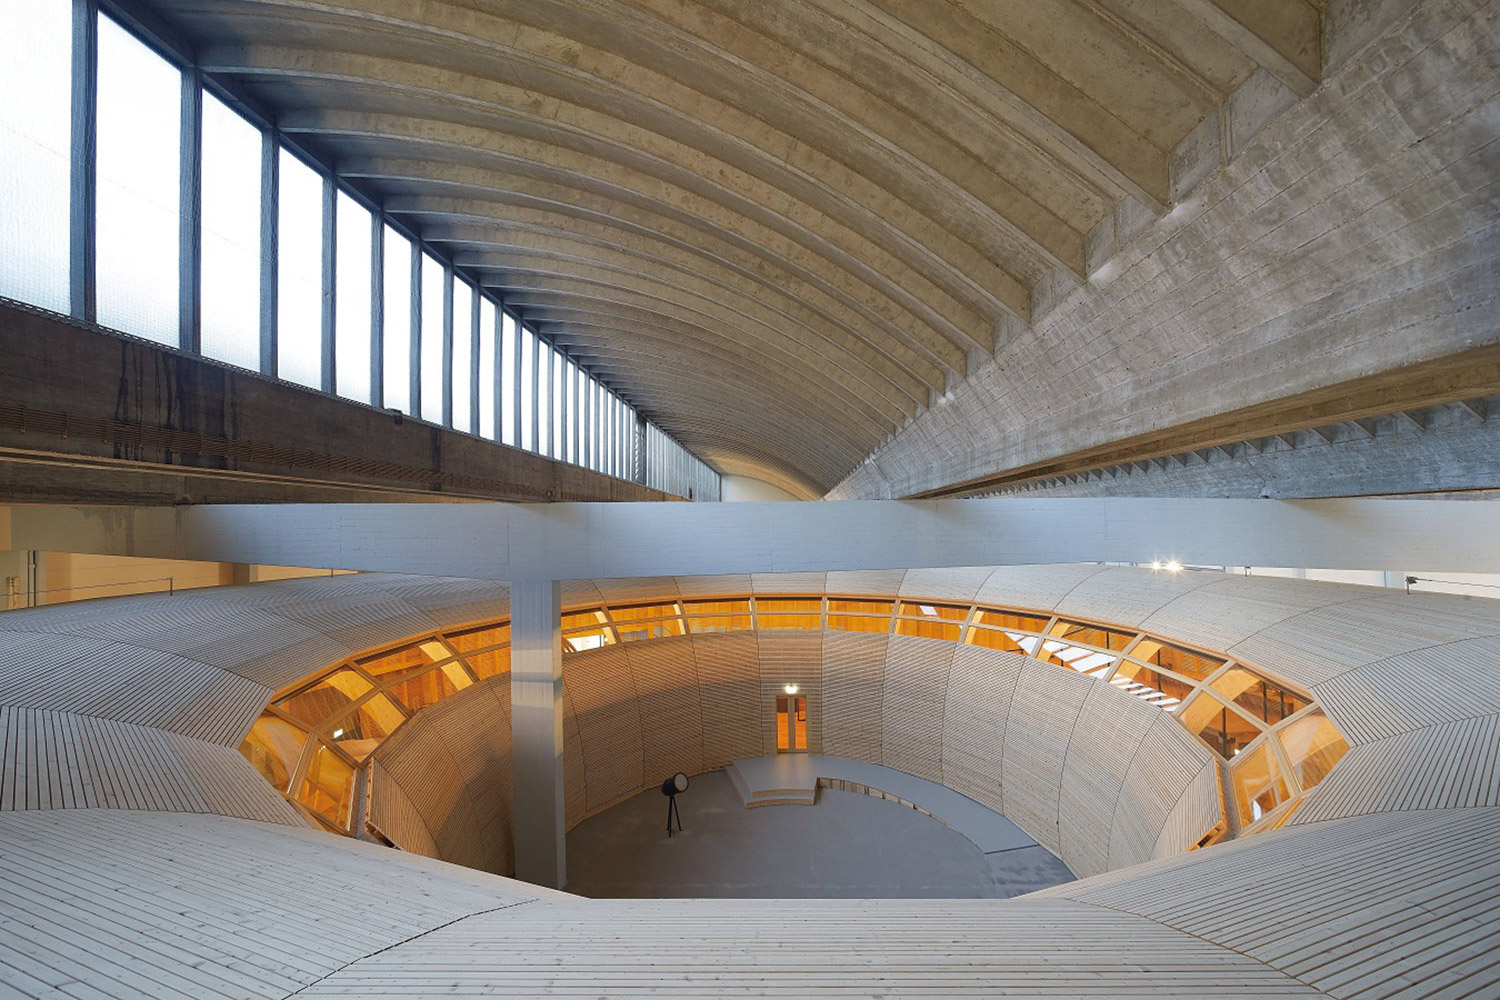 ANOHA, inside the Jewish Museum of Berlin, secured WSDG to perfect the acoustics of the spaces without compromising the design. Interior.